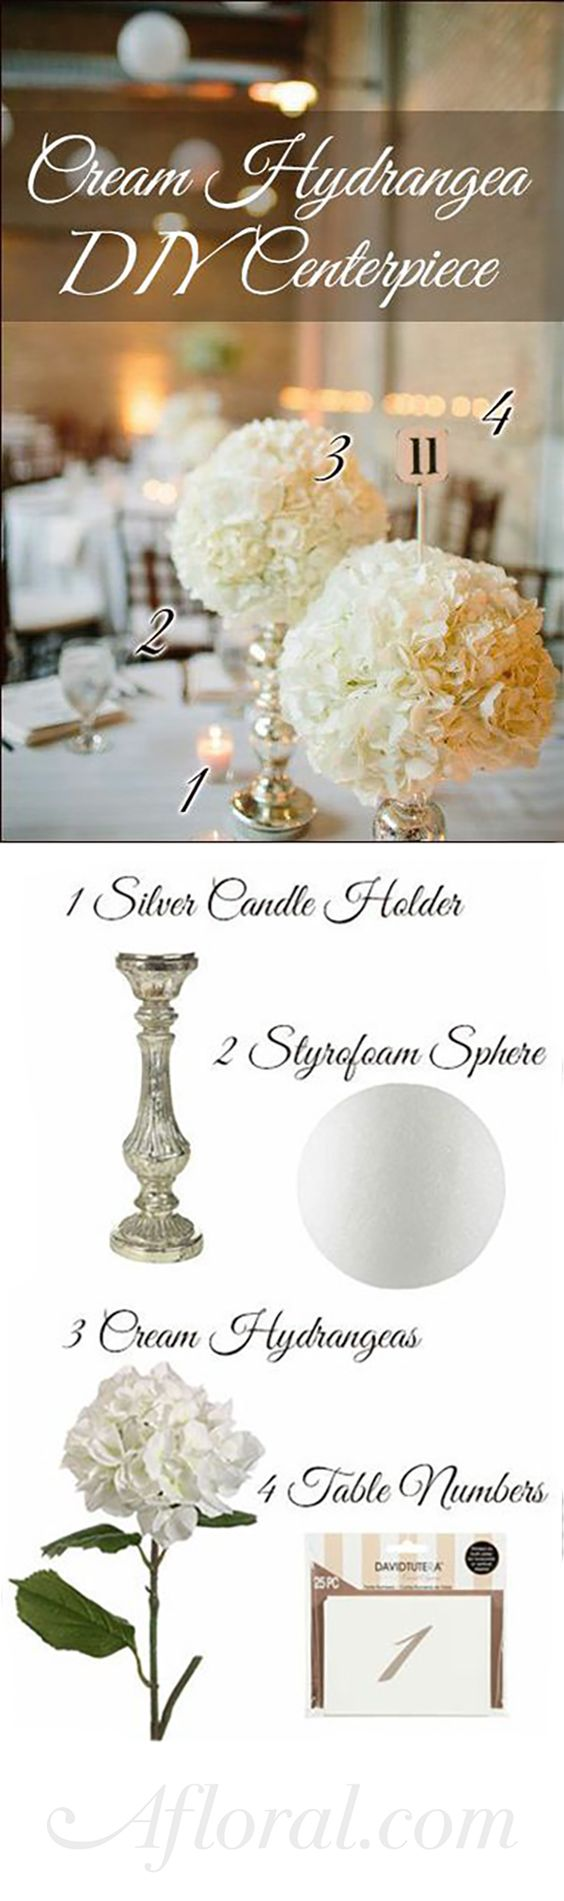 Affordable wedding centerpieces original ideas tips diys diy hydrangea centerpiece ideas for your wedding reception solutioingenieria Gallery